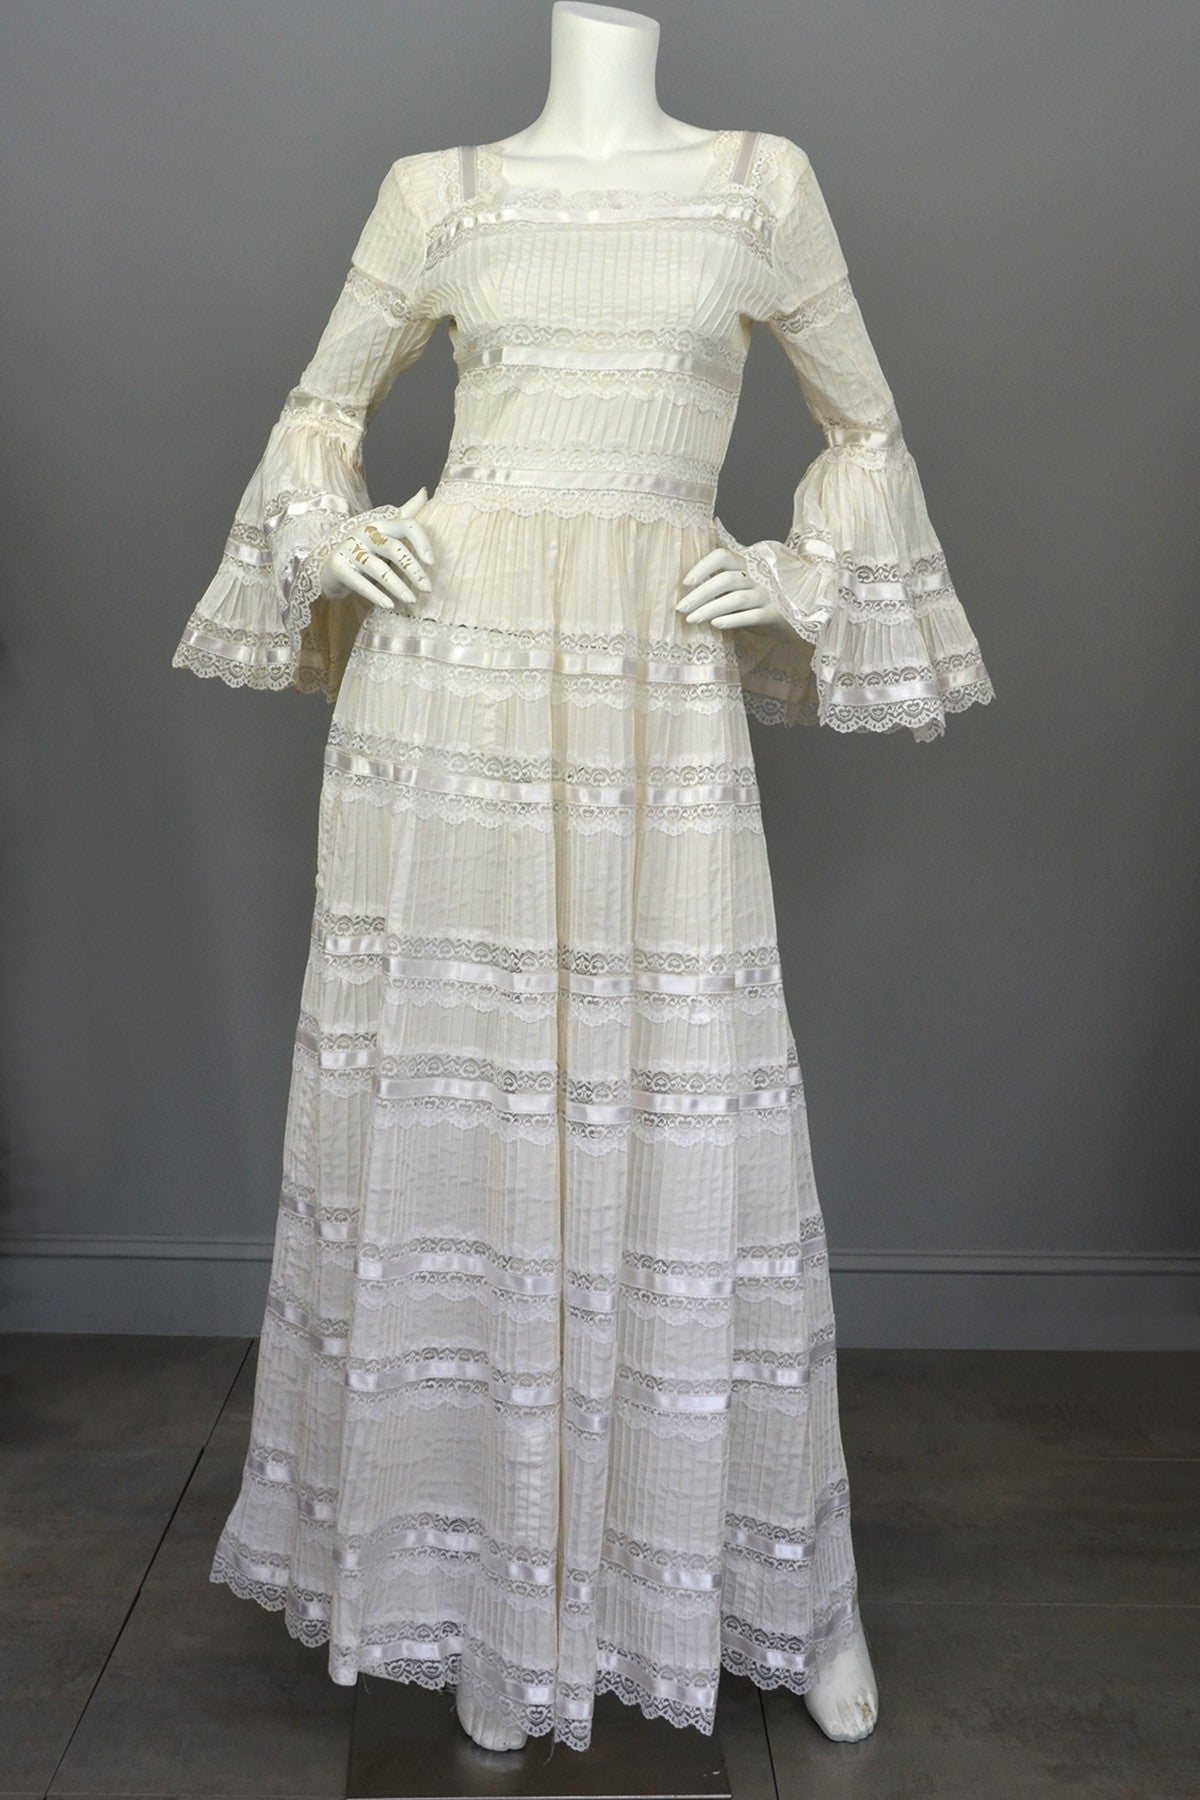 daa1020aad7 1970s Vintage Mexican Wedding Dress with Bell Sleeves and Lace |  VintageVirtuosa